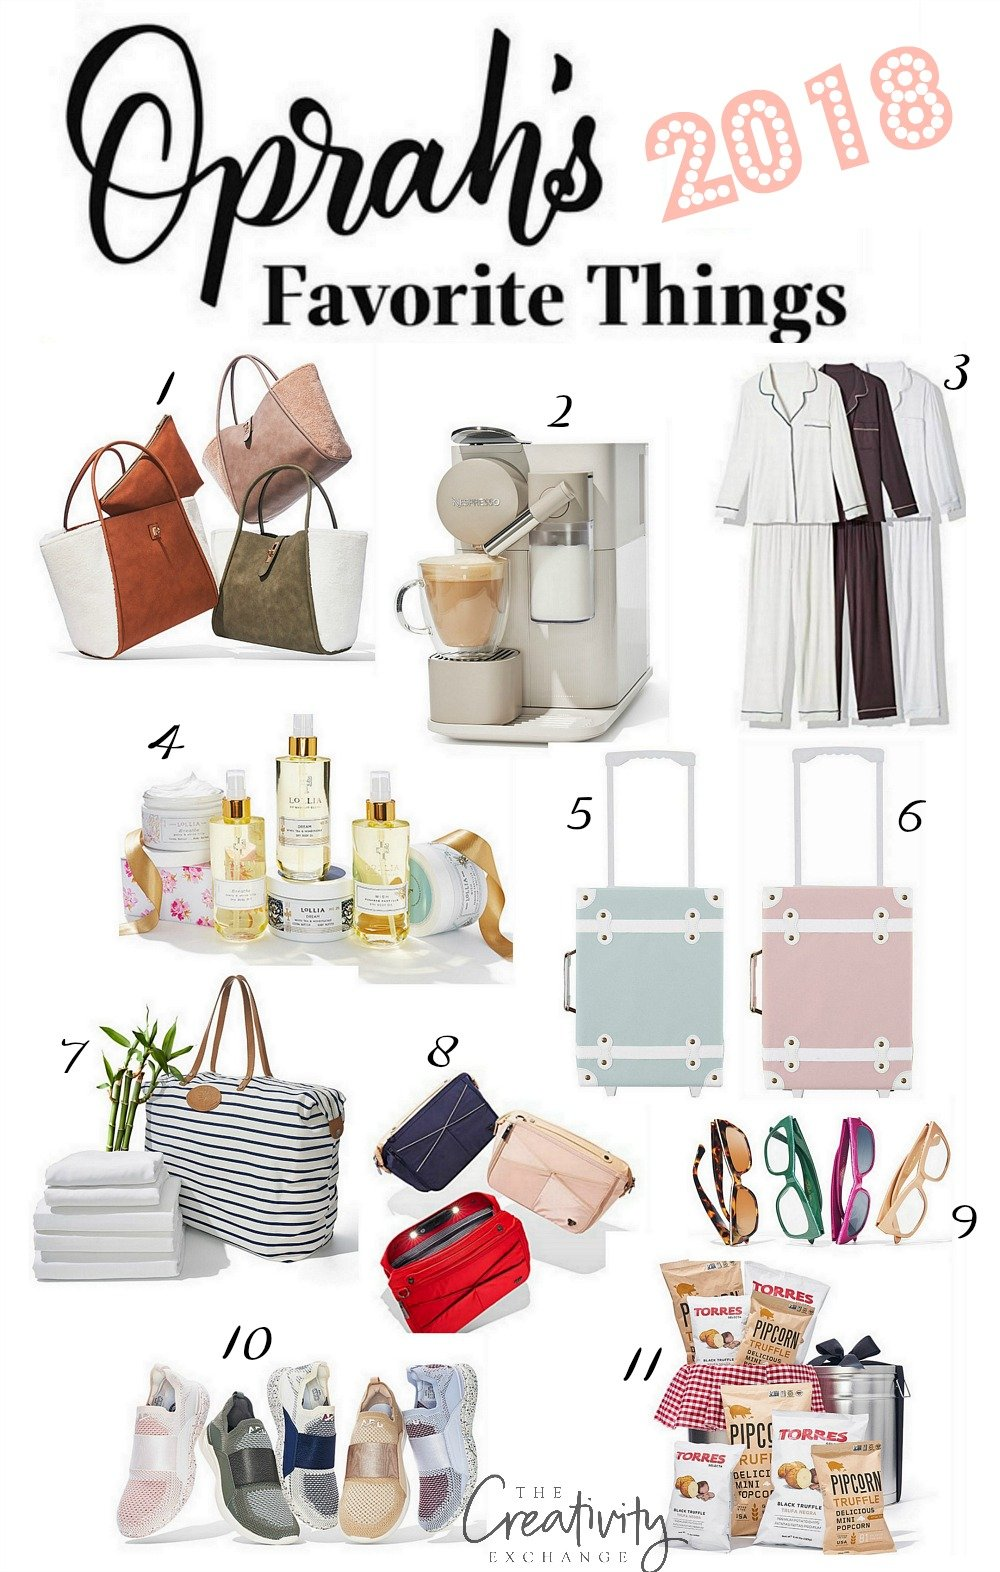 Oprah's full list has more than items on it, but here are 15 of our favorite things from Oprah's Favorite Things 1. Burt's Bees Holiday Family Pajamas, $10+, Amazon TODAY editors.